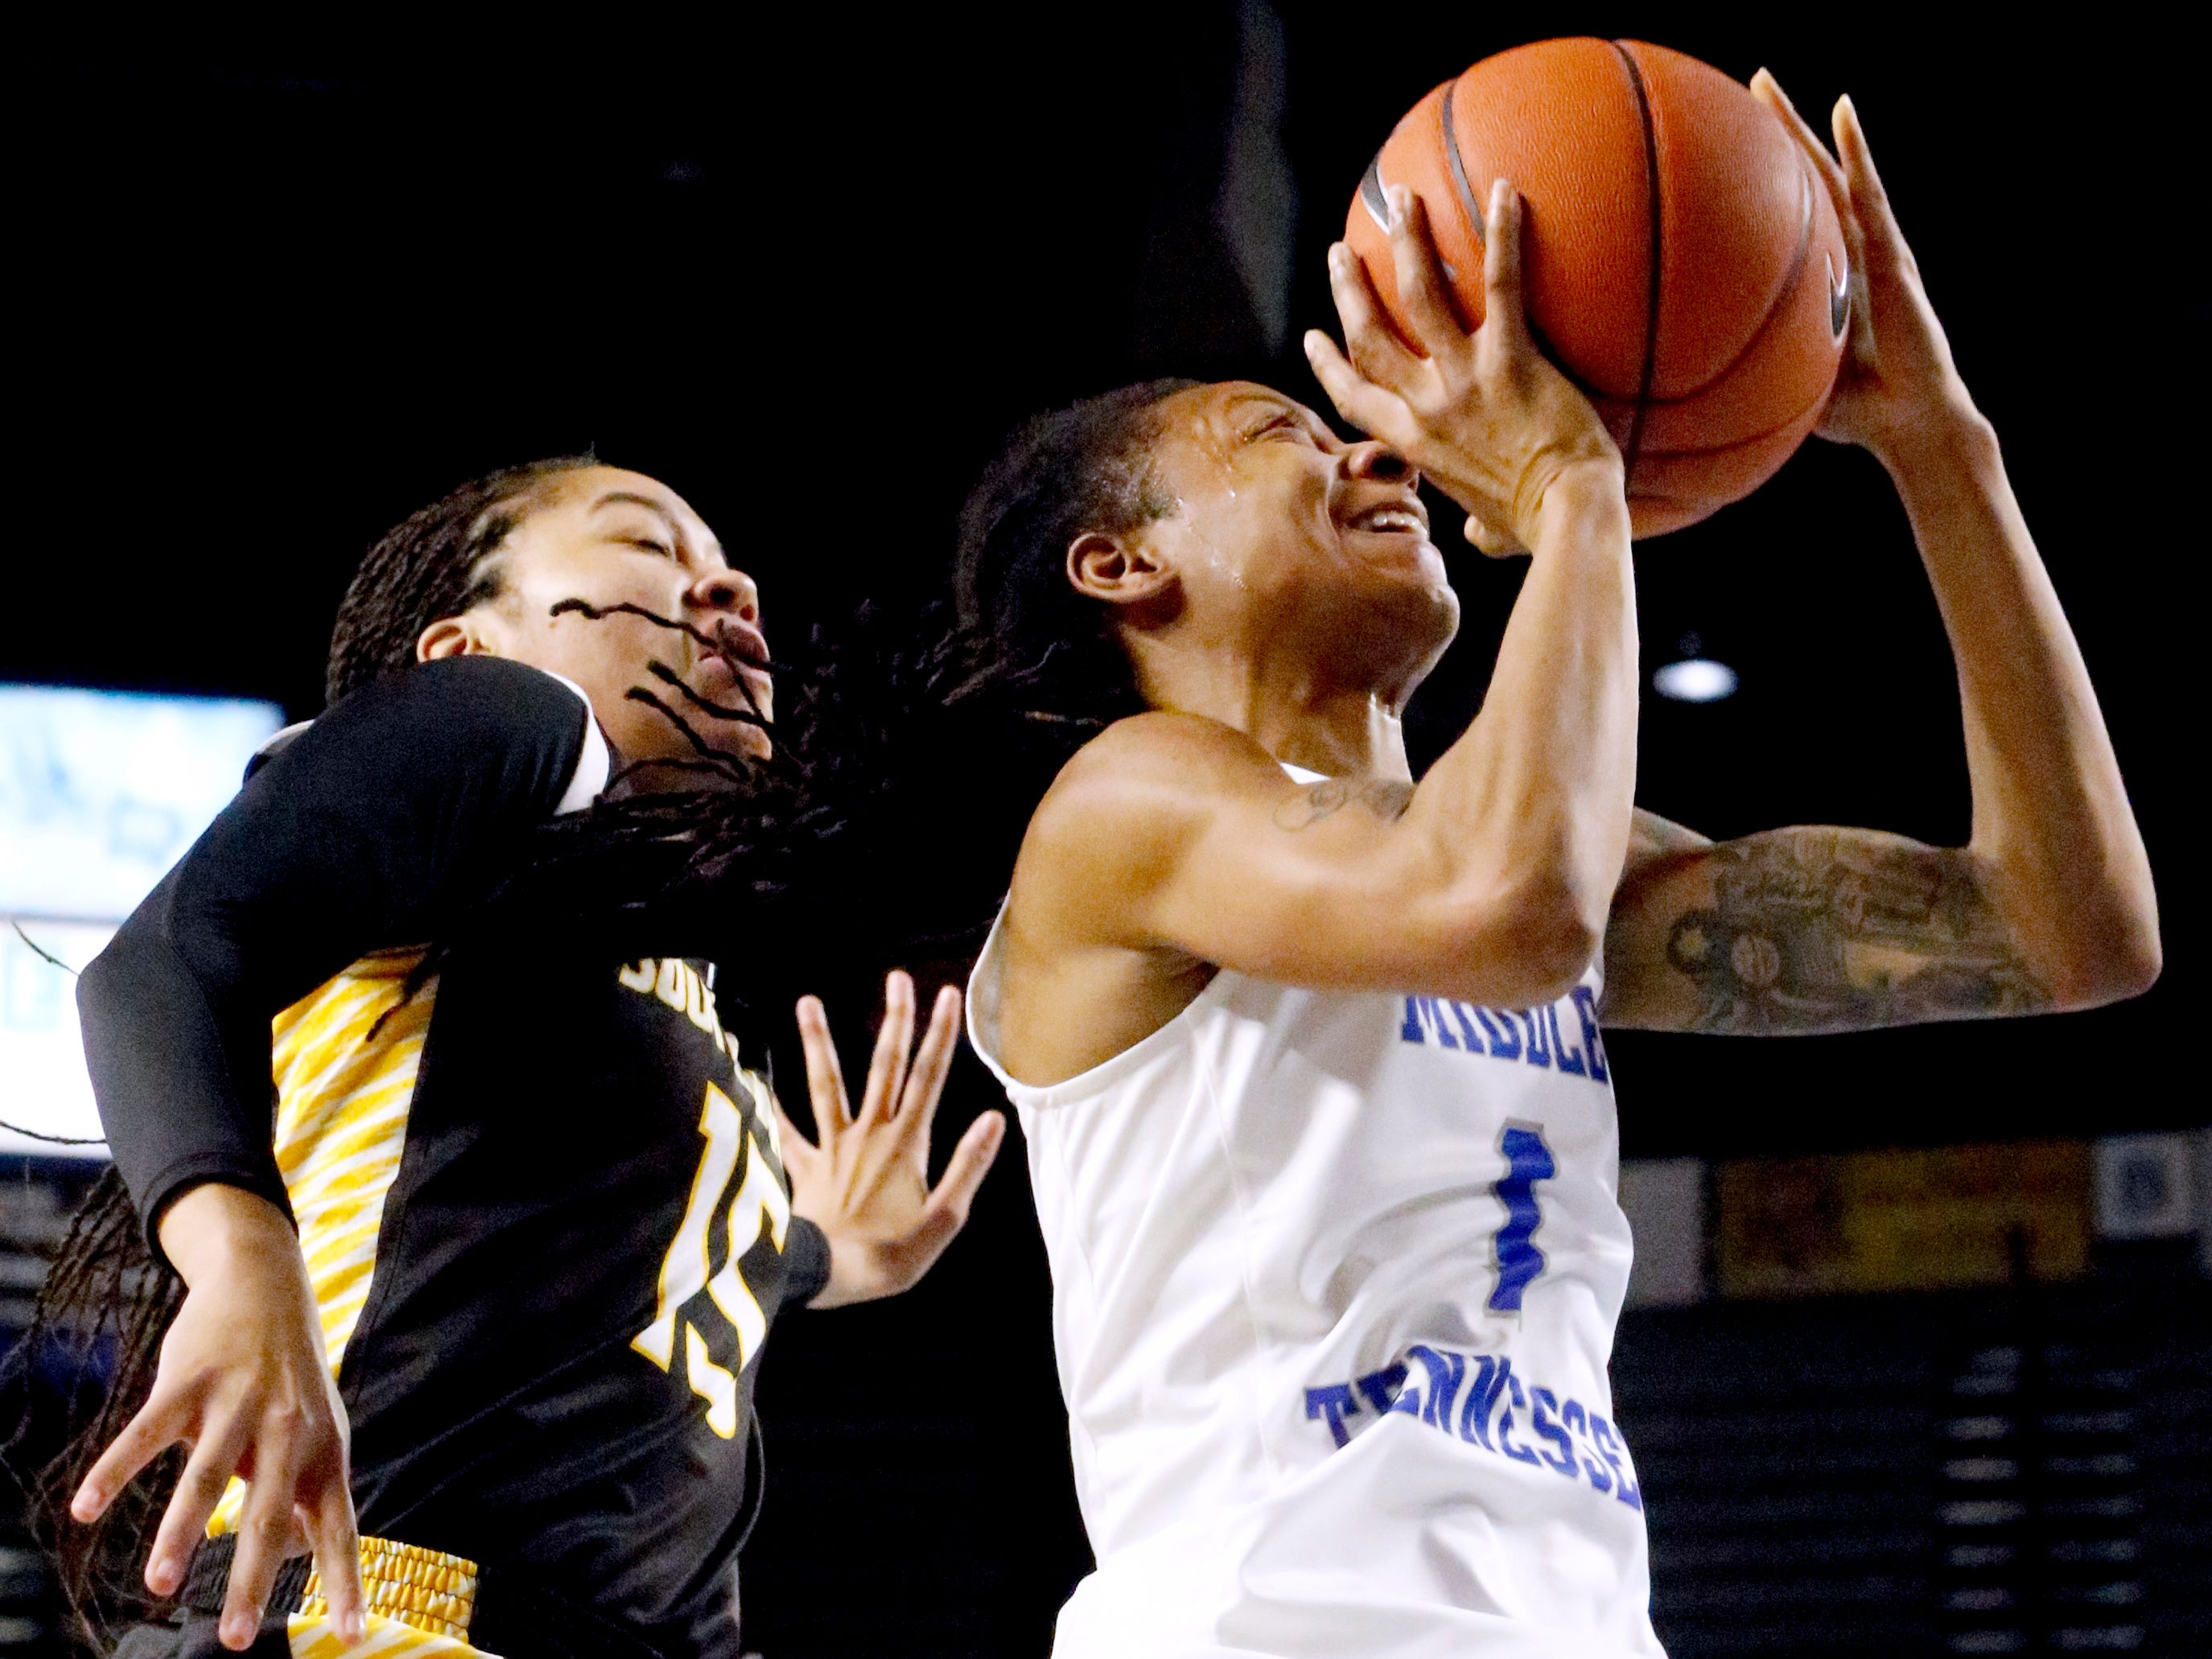 MTSU's guard A'Queen Hayes (1) goes up for a shot as Southern Miss' Amber Landing (15) comes up from behind her, on Thursday Jan. 10, 2019.